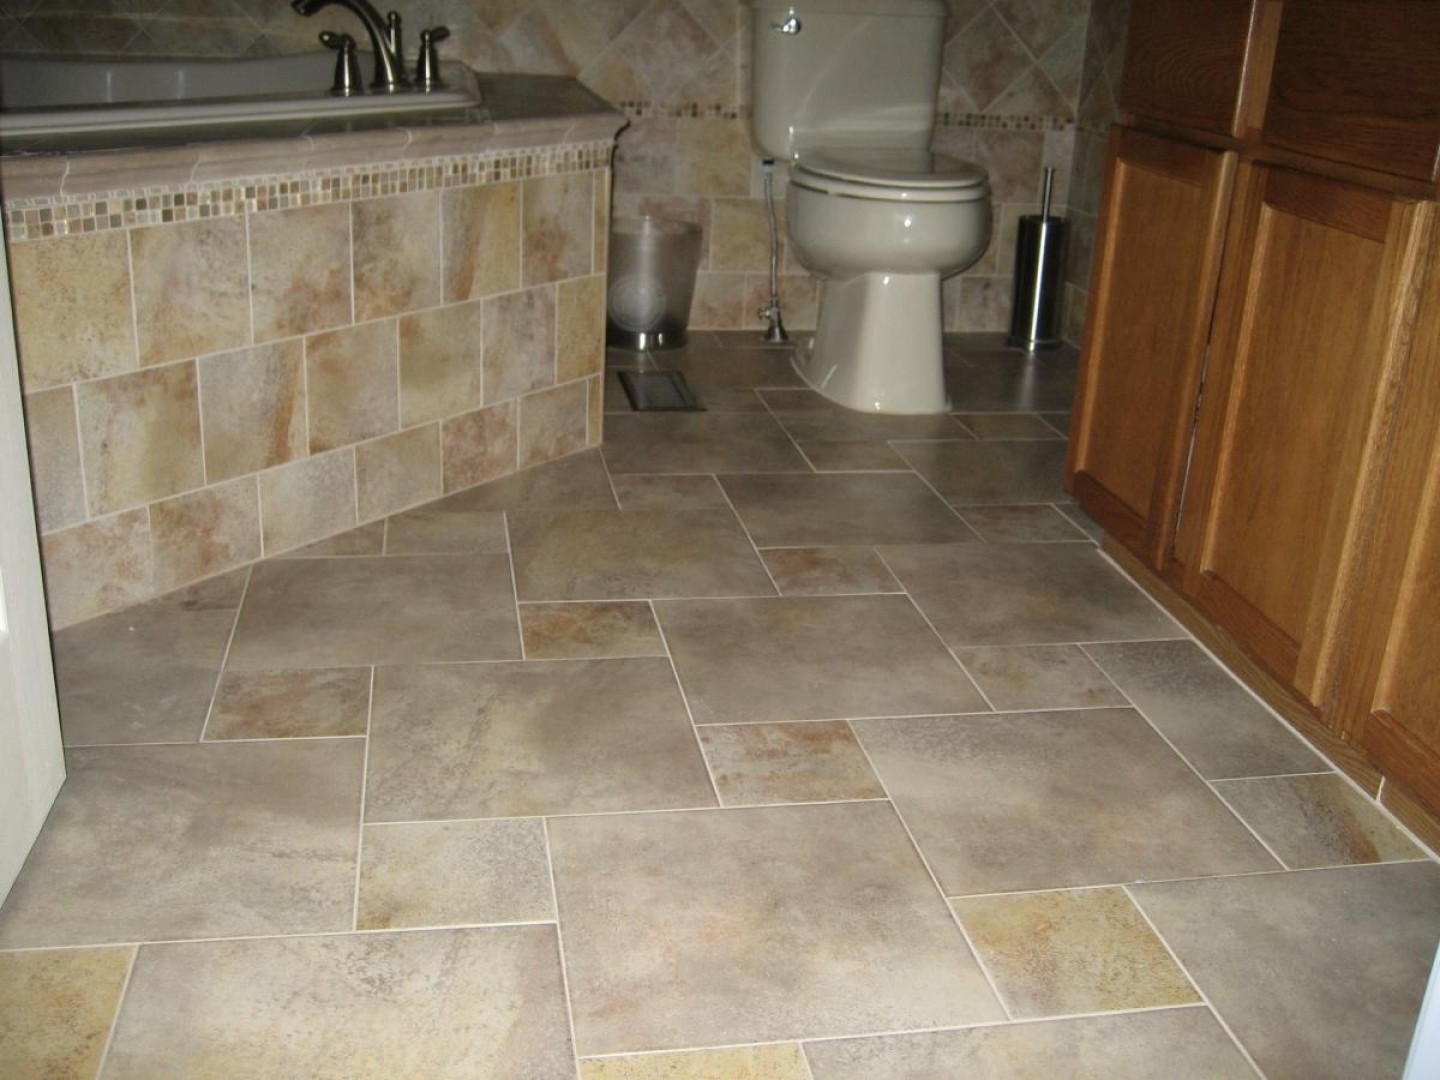 Bathroom Floor Ceramic Tile Design Ideas ~ Wonderful pictures bathroom large size ceramic tile